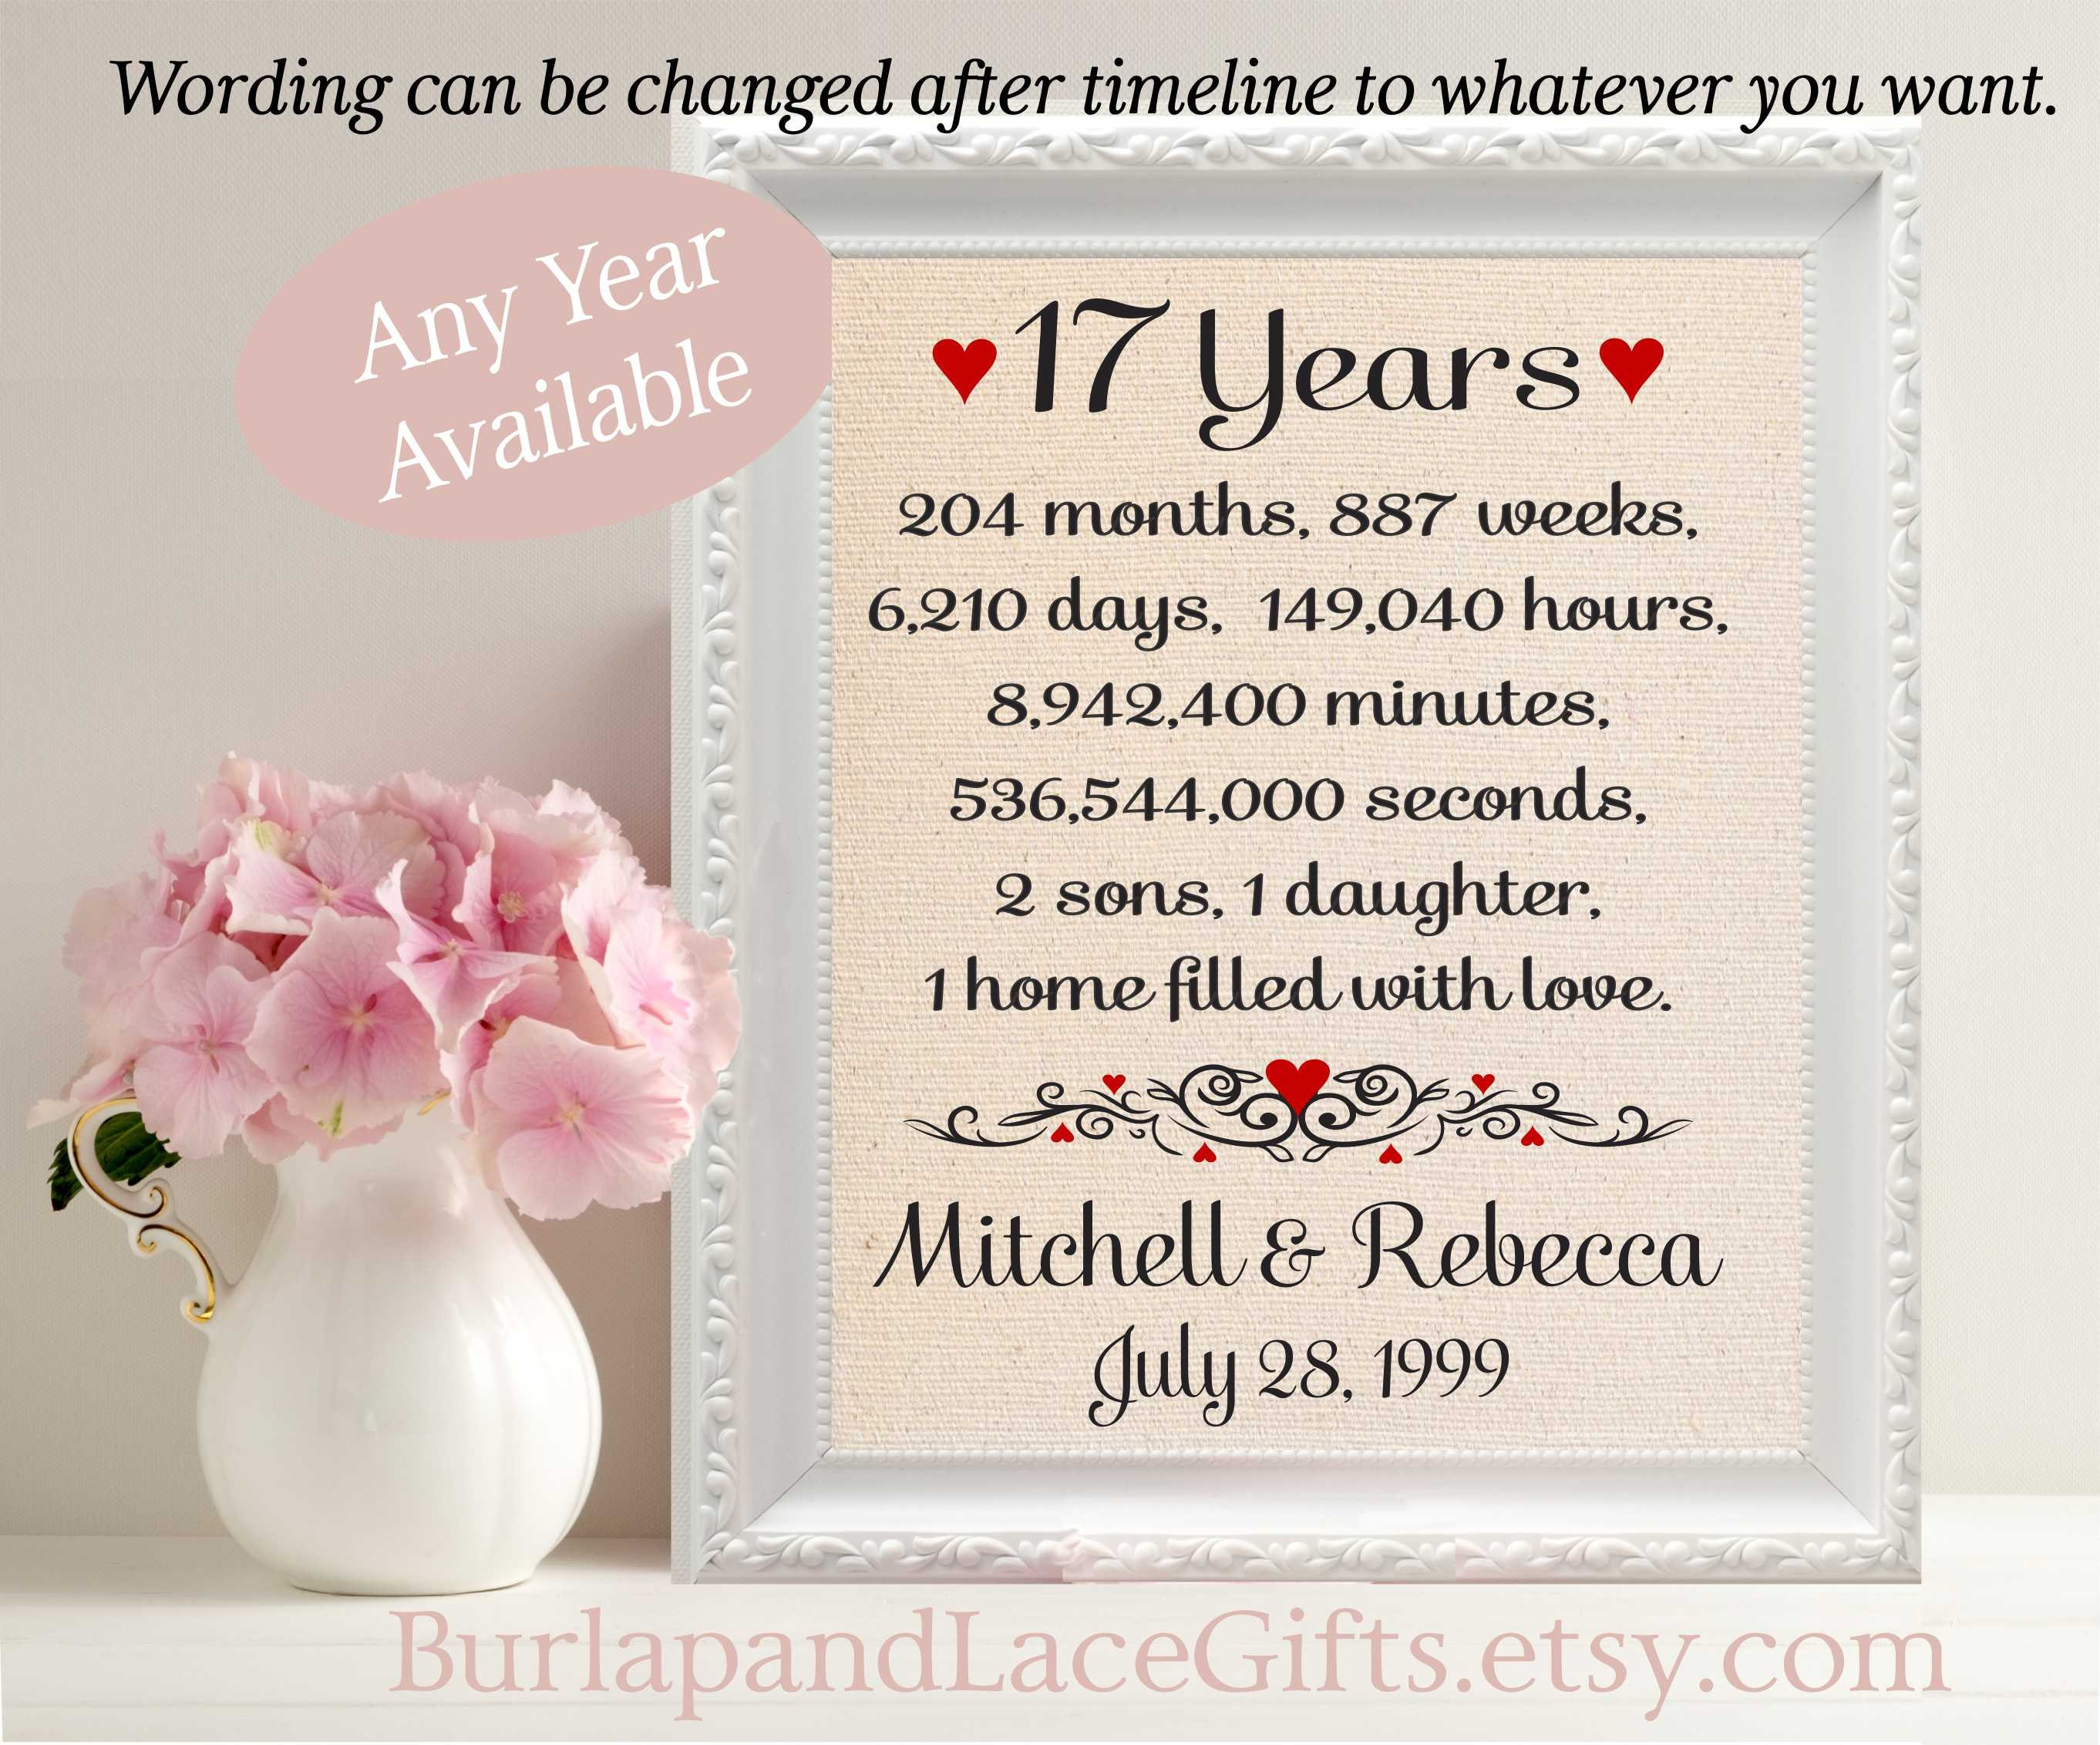 Gifts For 17th Wedding Anniversary: 17th Anniversary Gift To Wife Anniversary Gift To Husband